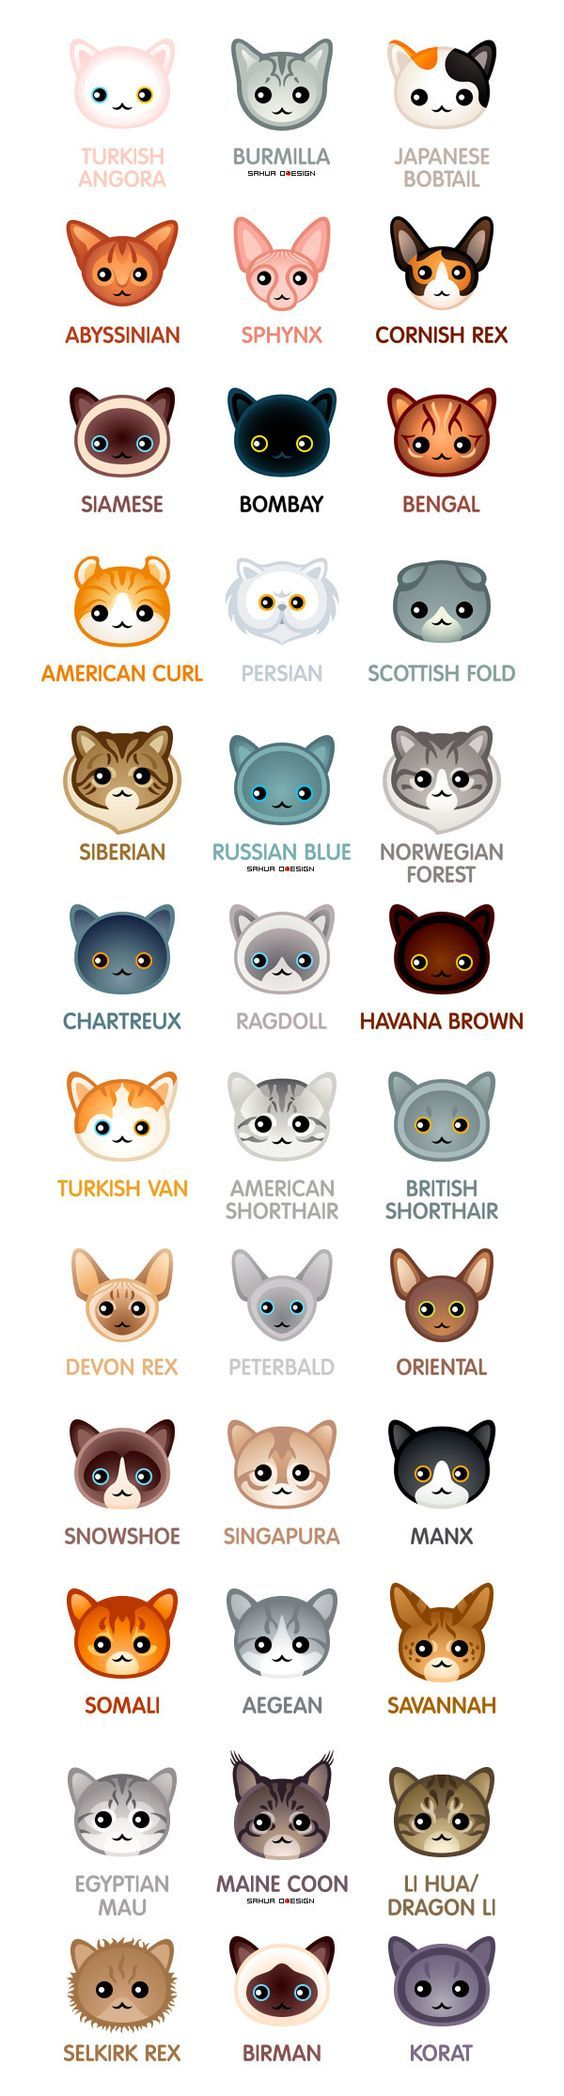 Kawaii cats by sahua d: